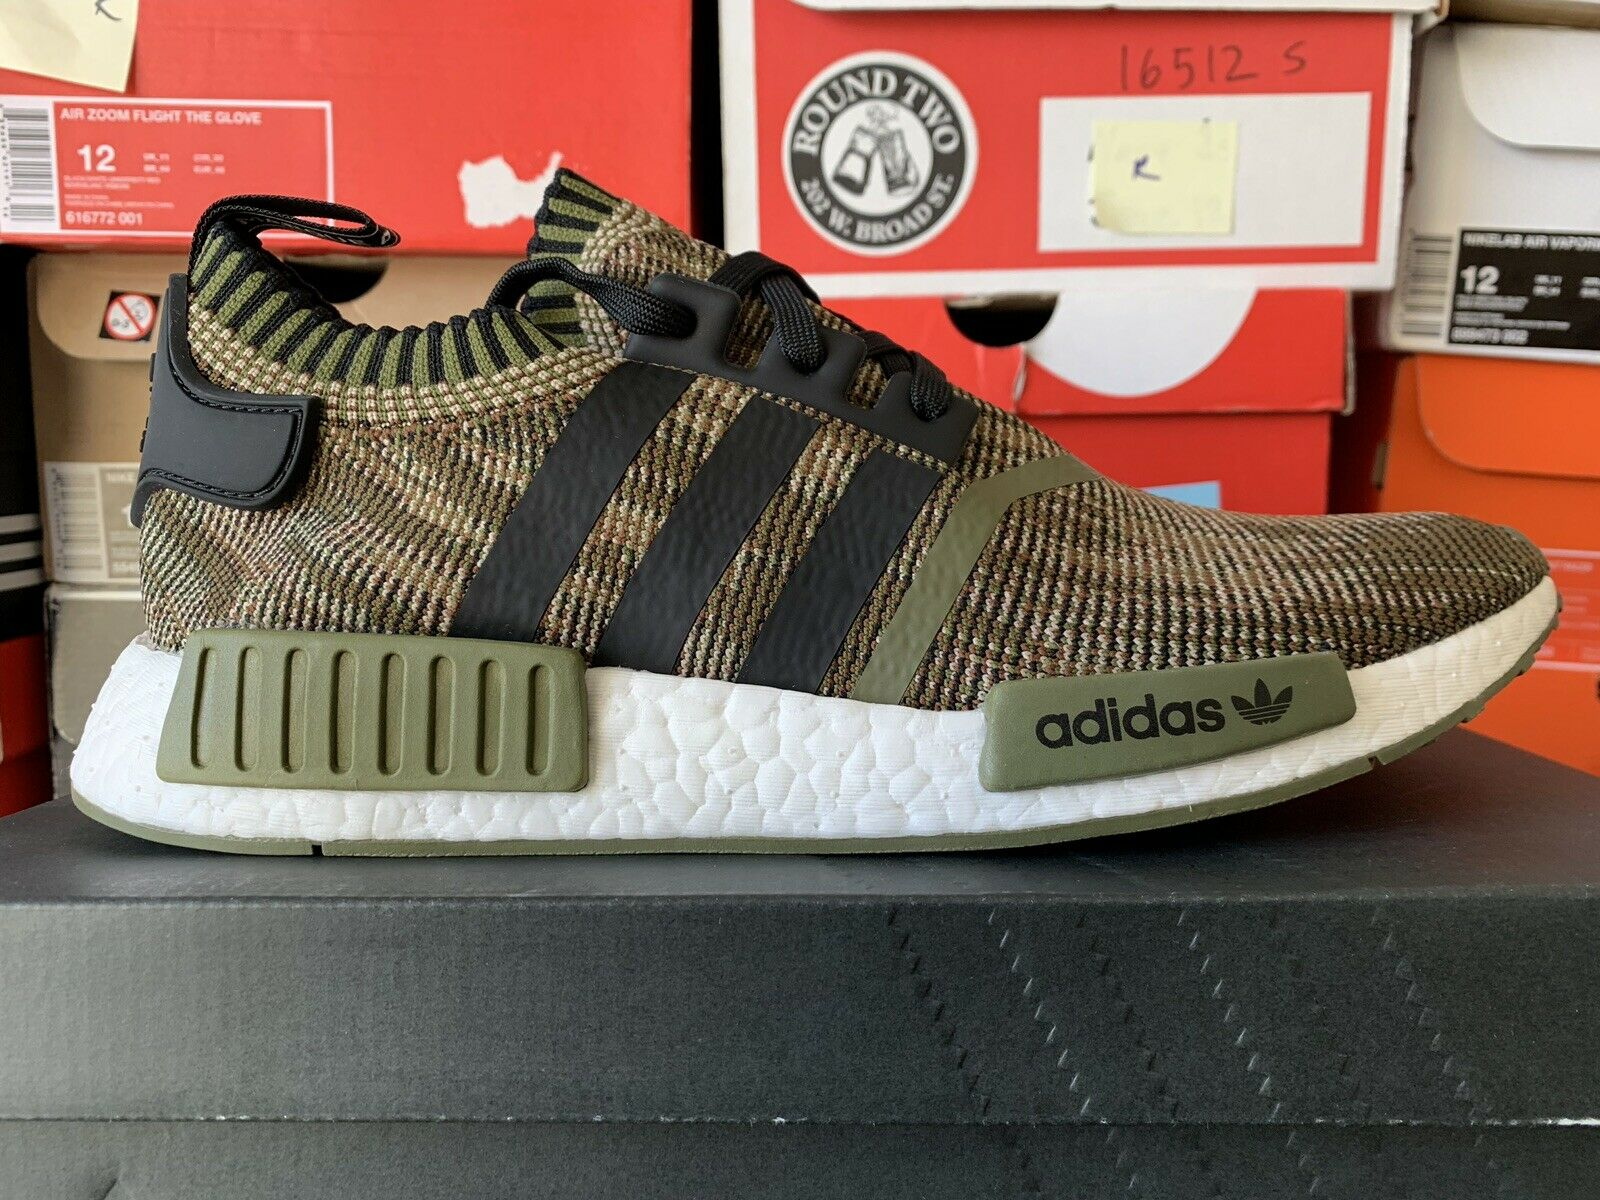 Adidas NMD R1 PK A.I. Camo Pack Olive Sneaker Unboxing